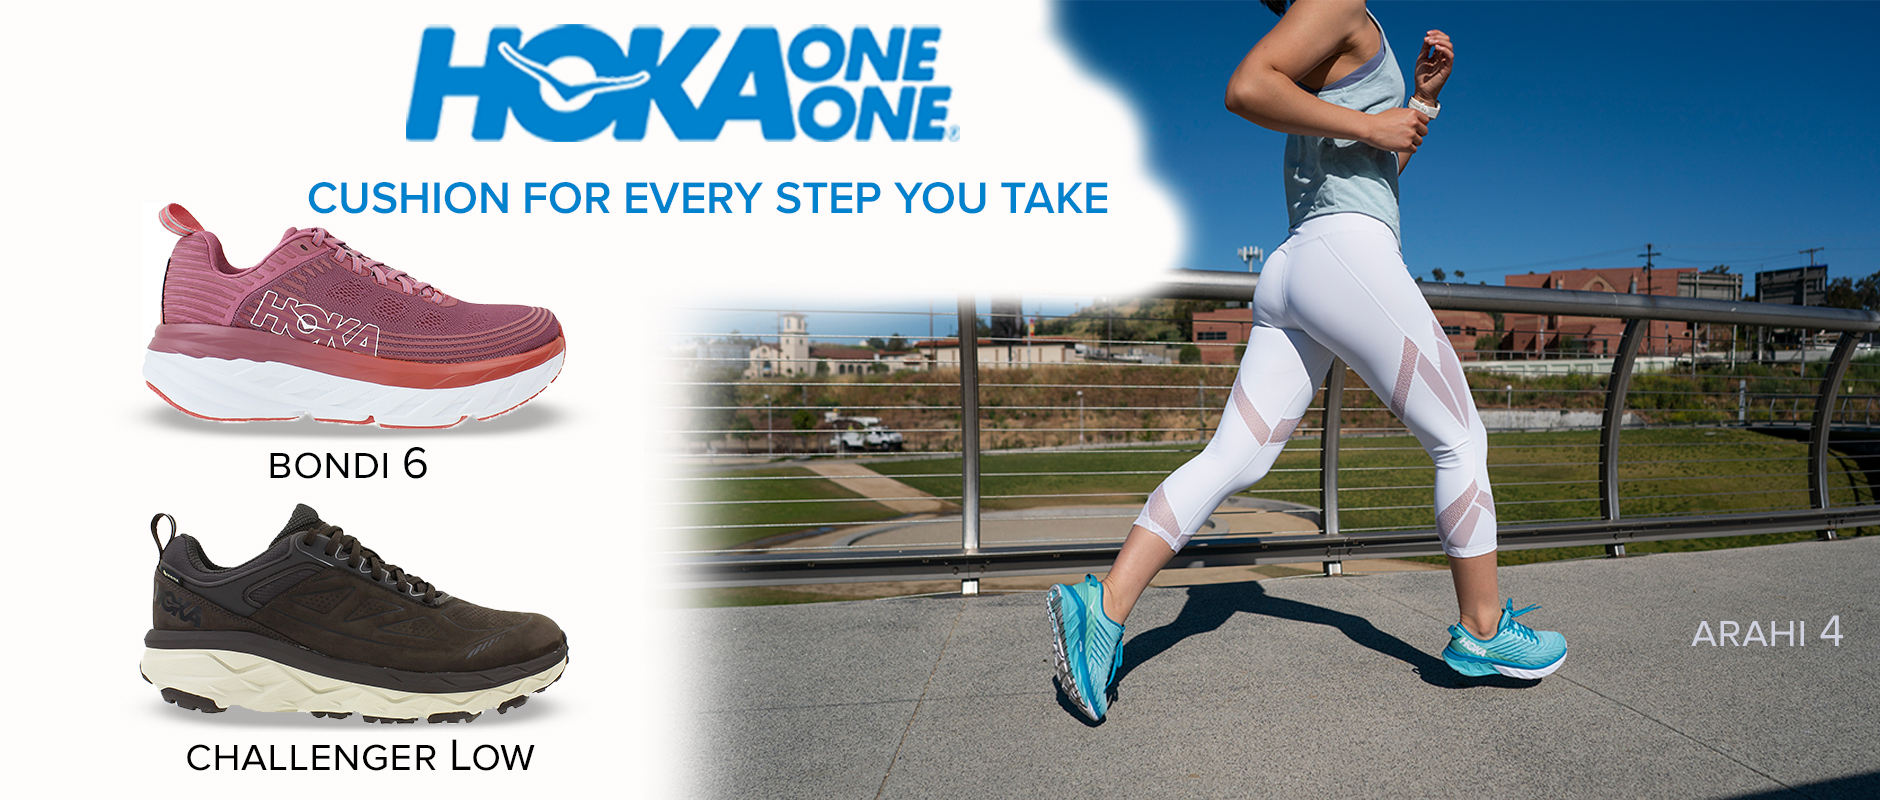 Shop Hoka One One